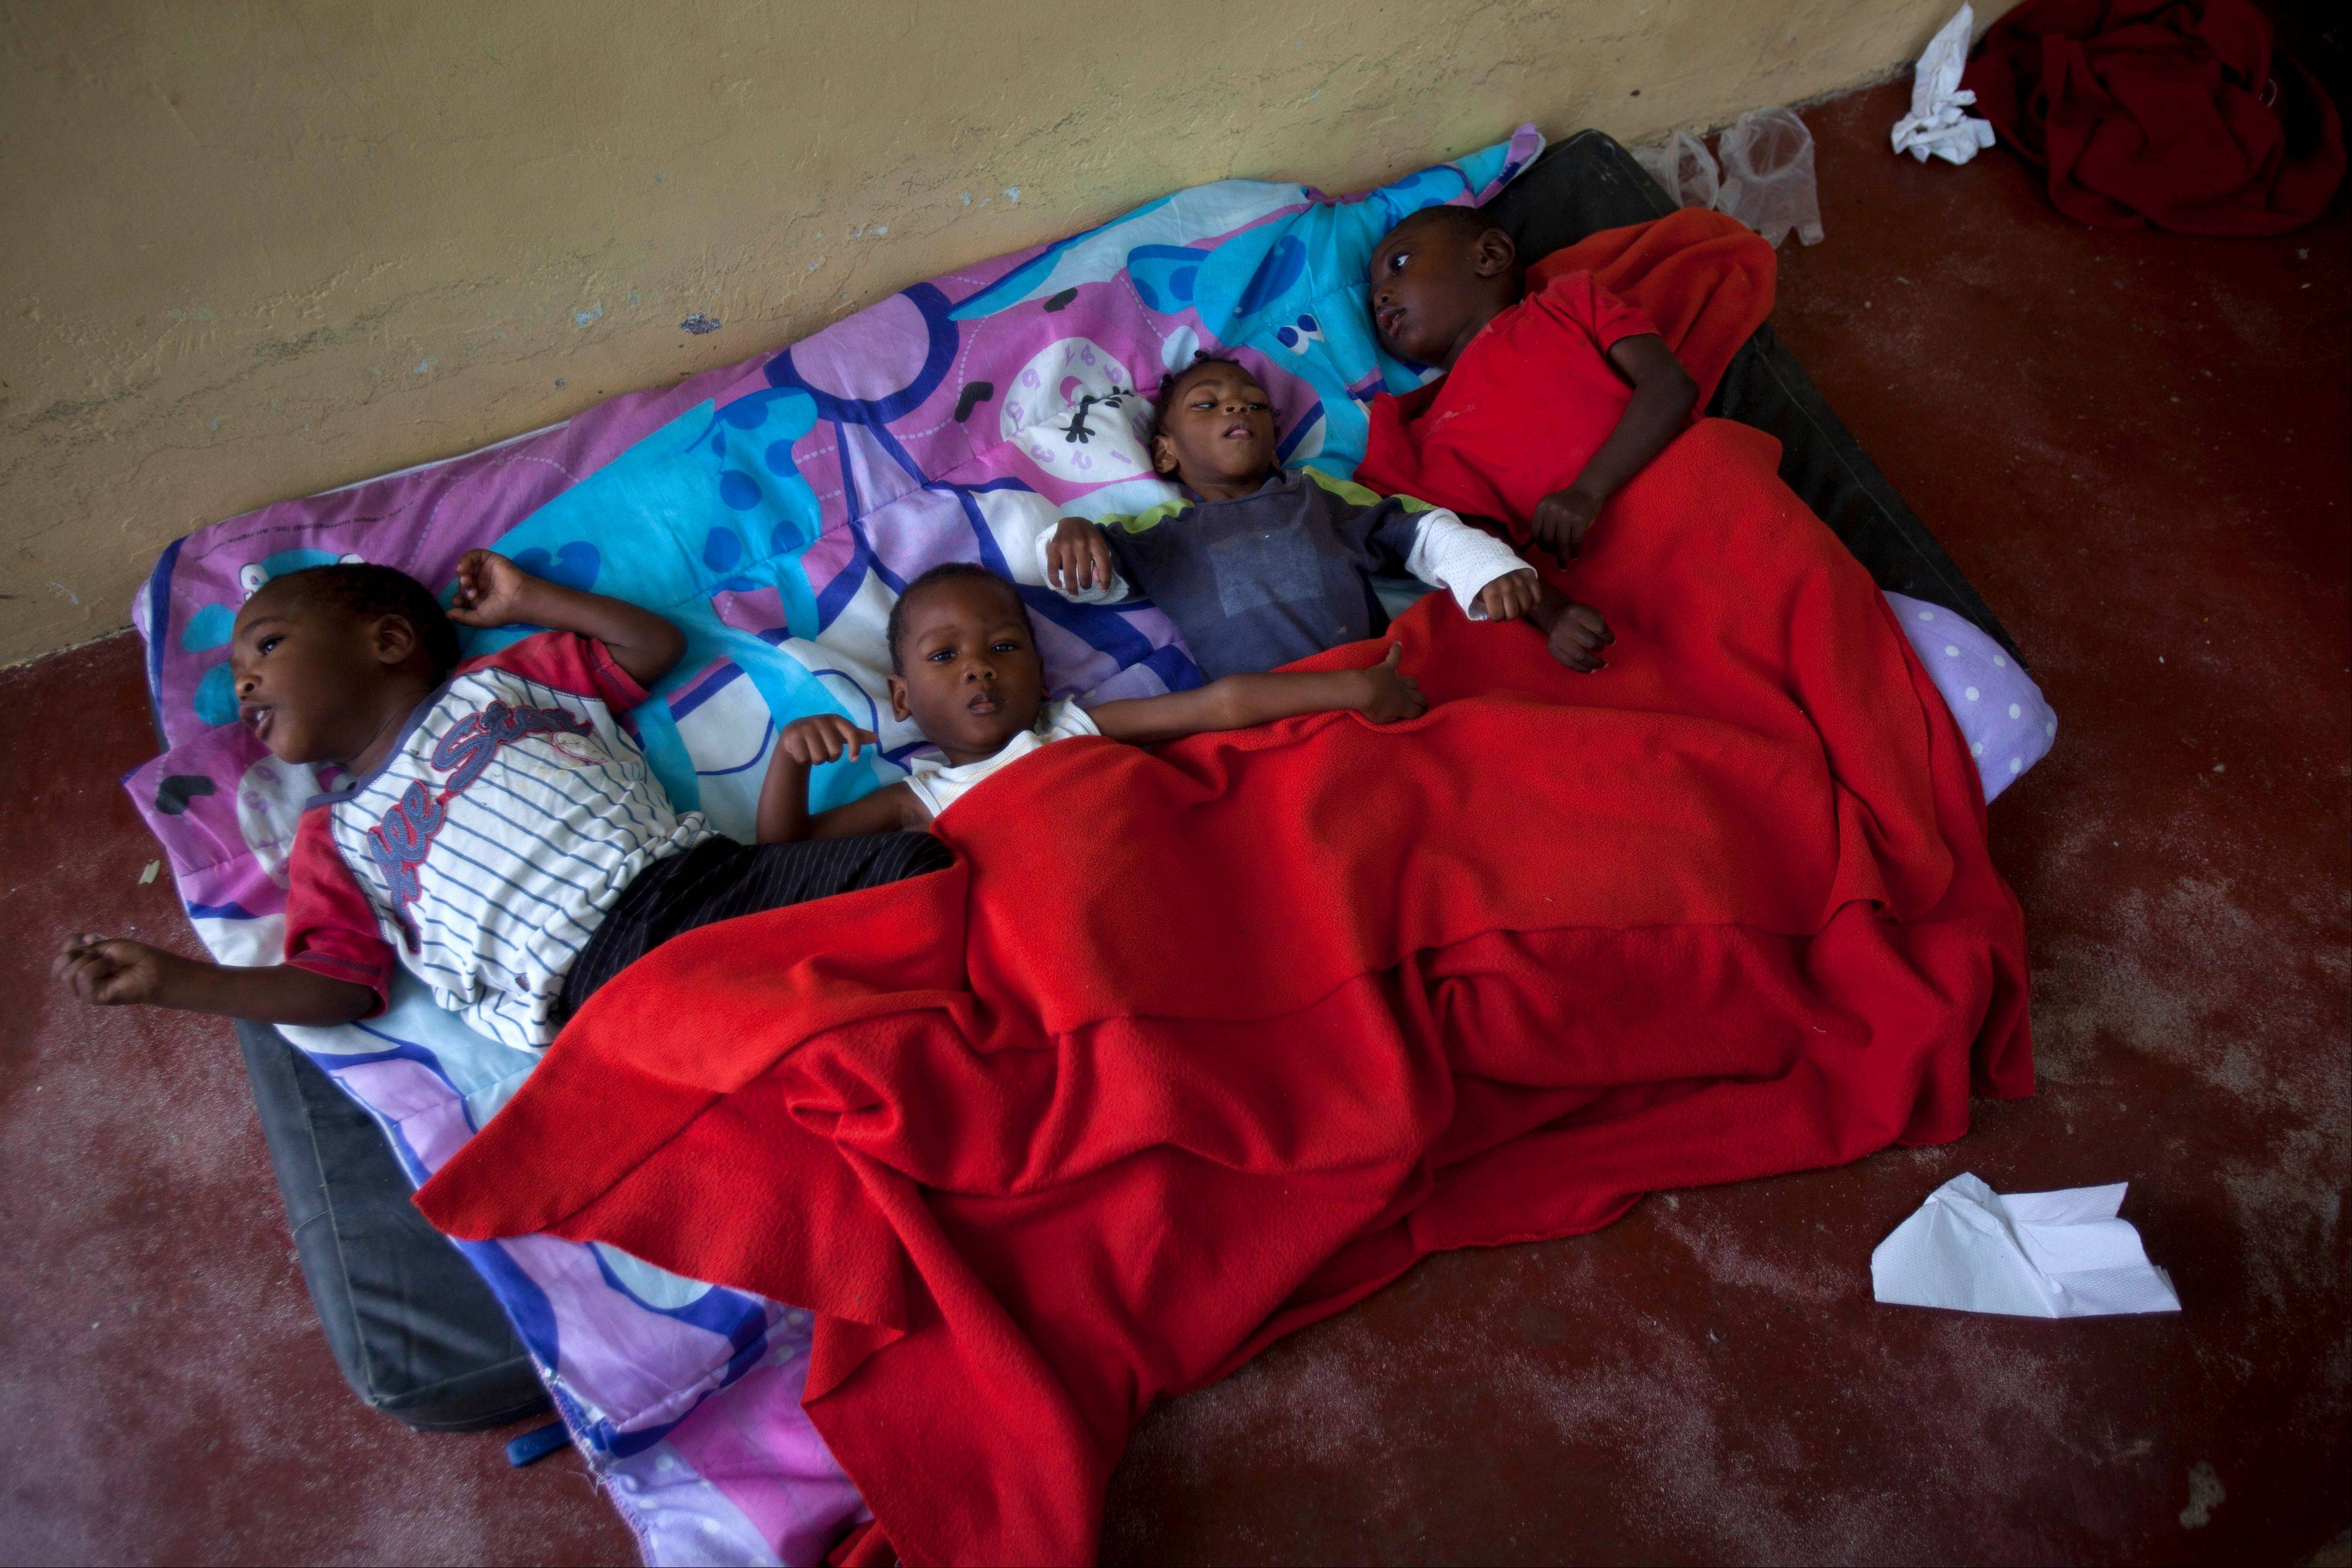 Children lay on a worn mattress placed on the floor of the U.S.-